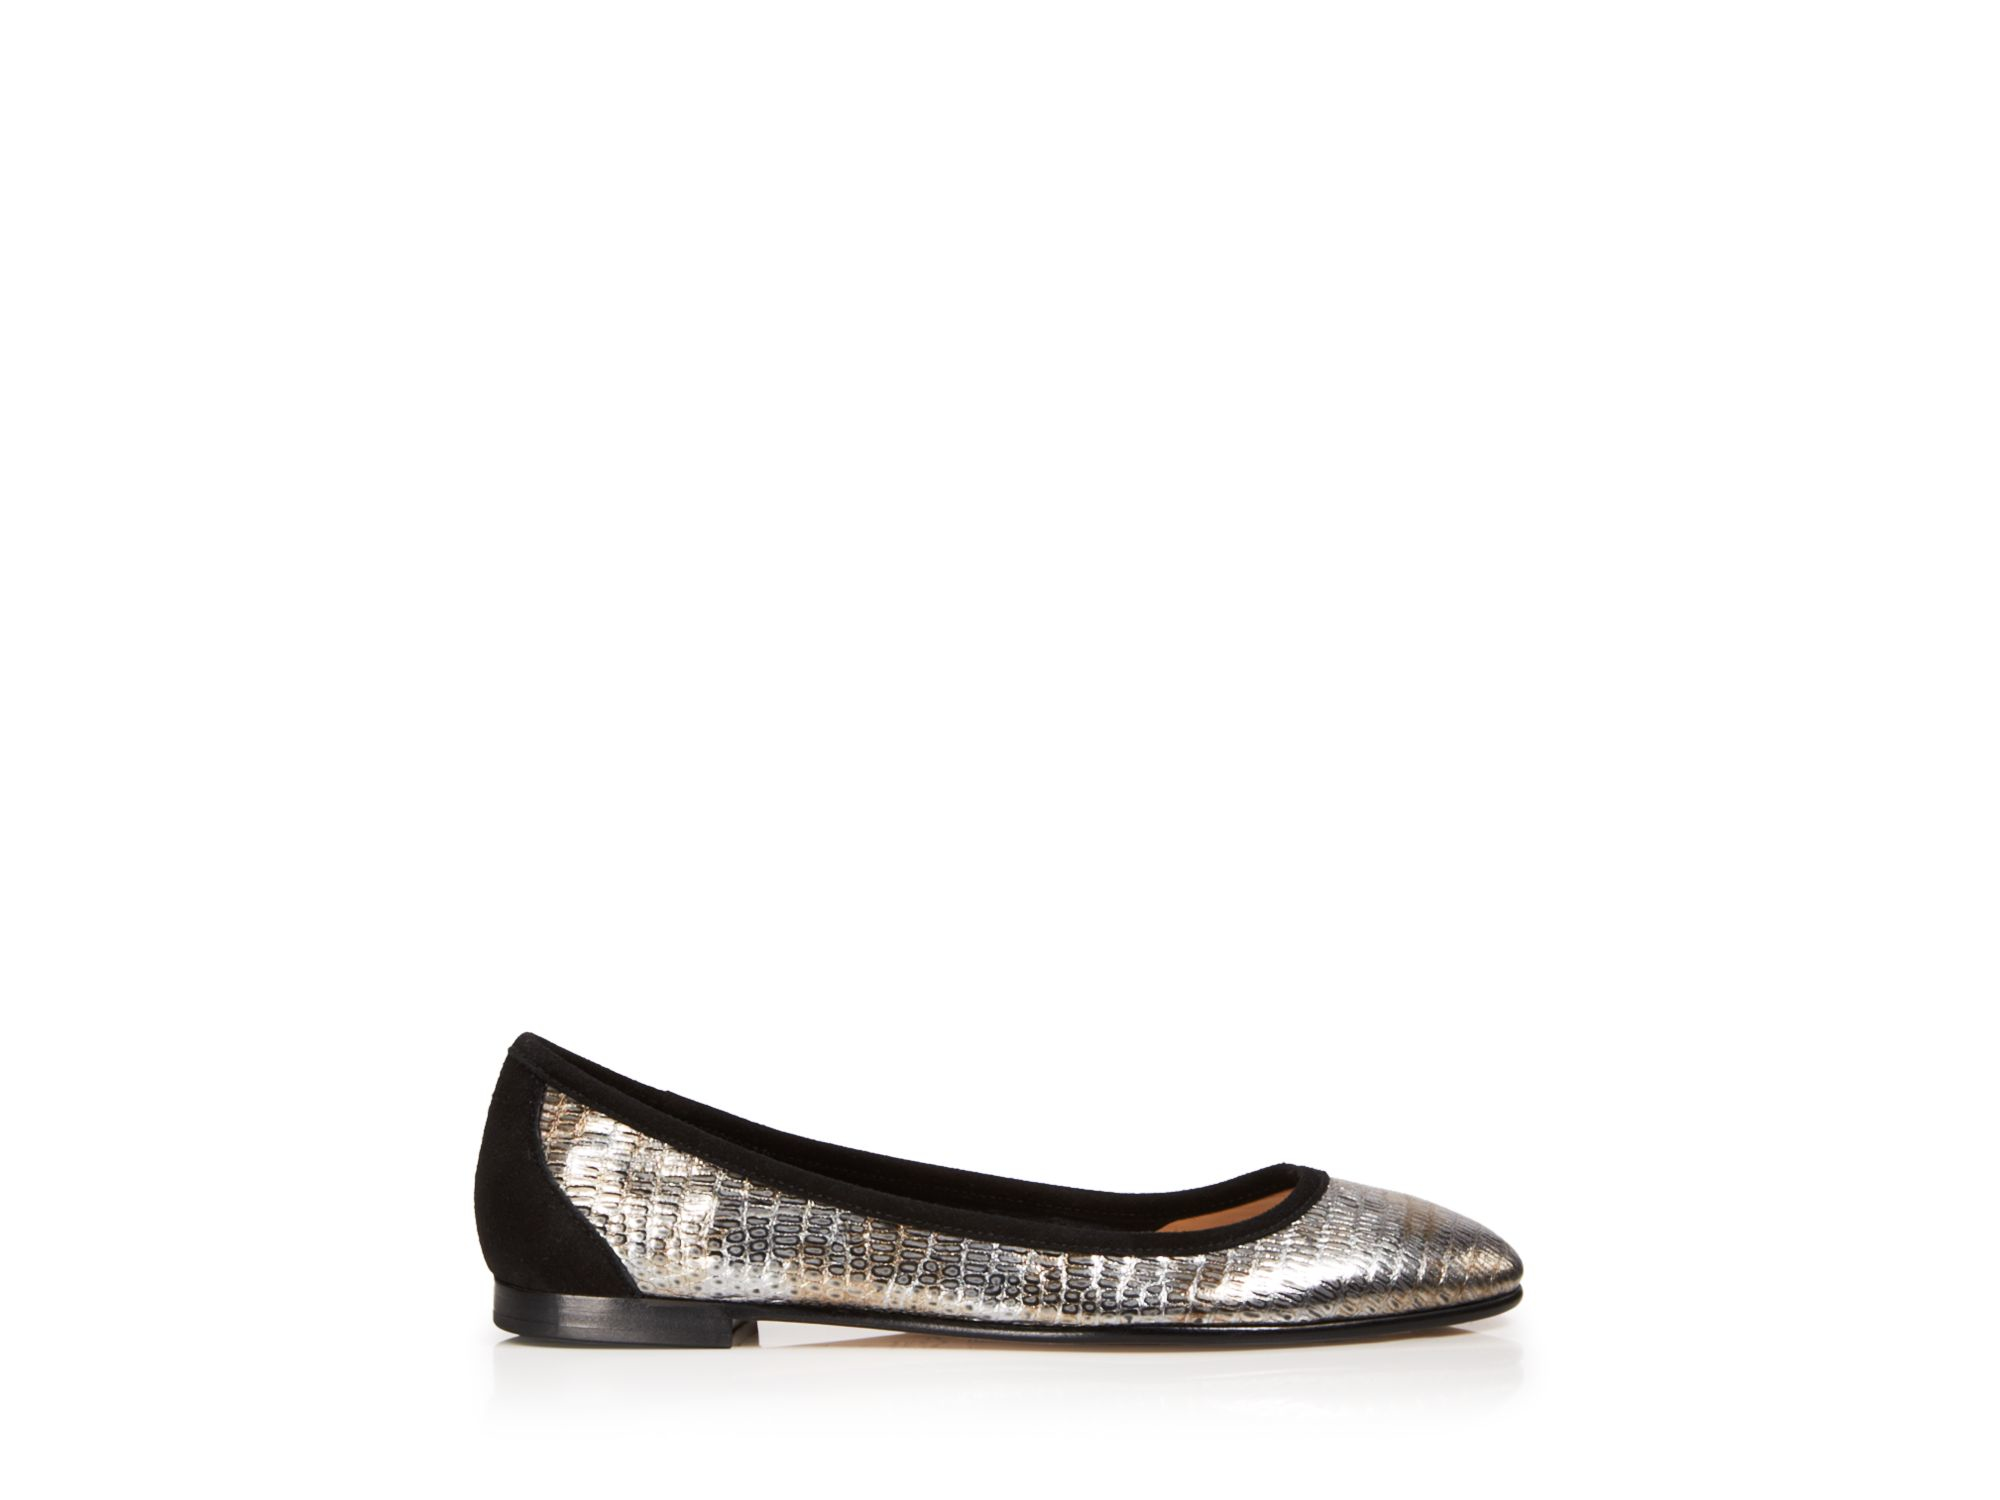 Via Spiga Metallic Leather Flats buy cheap 100% guaranteed C8sYrFJ